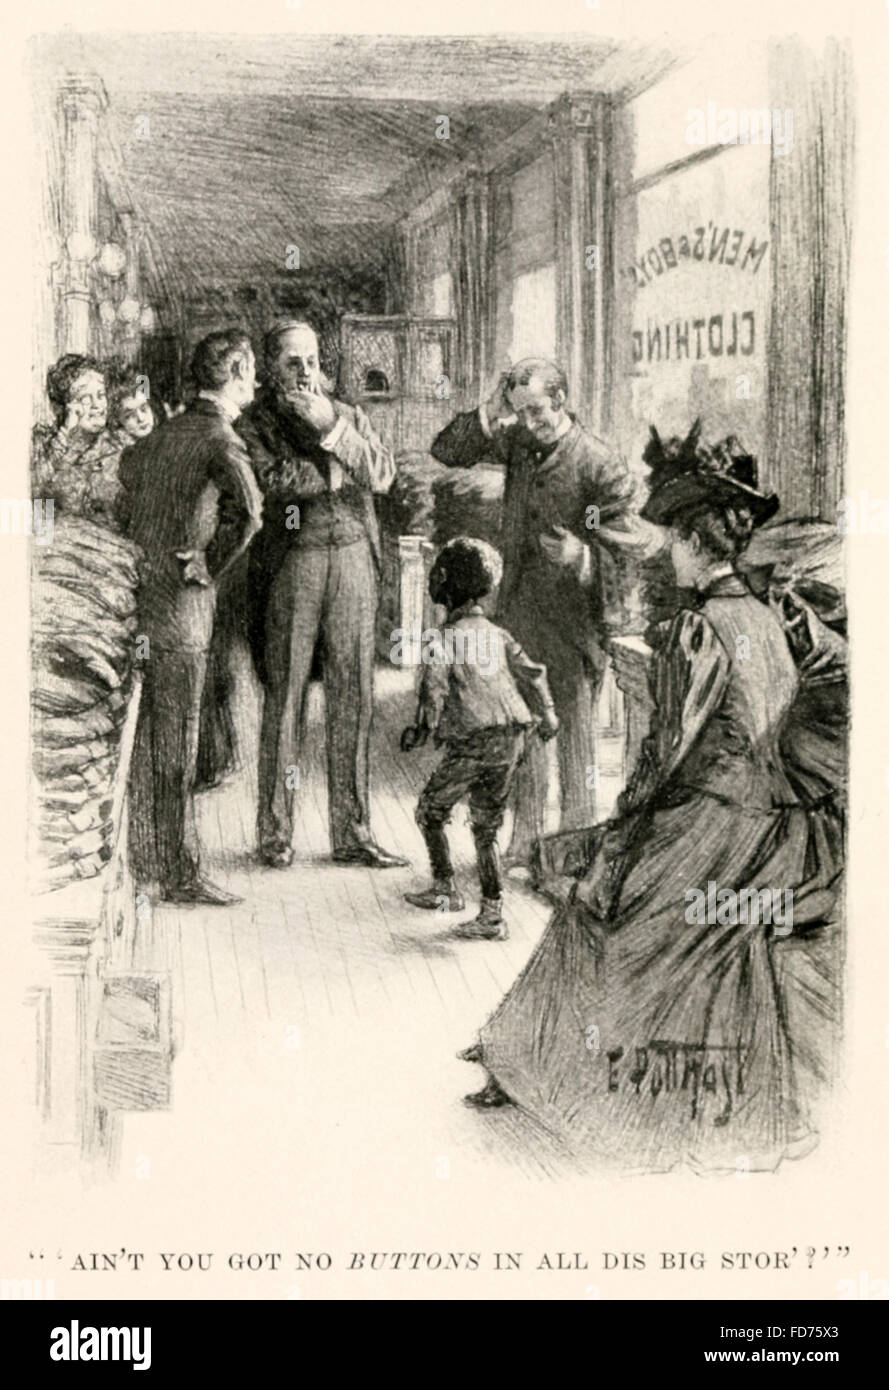 ''Ain't you got no buttons in all dis big stor?'' frontispiece from 'Little 'Jim Crow' - Stock Image